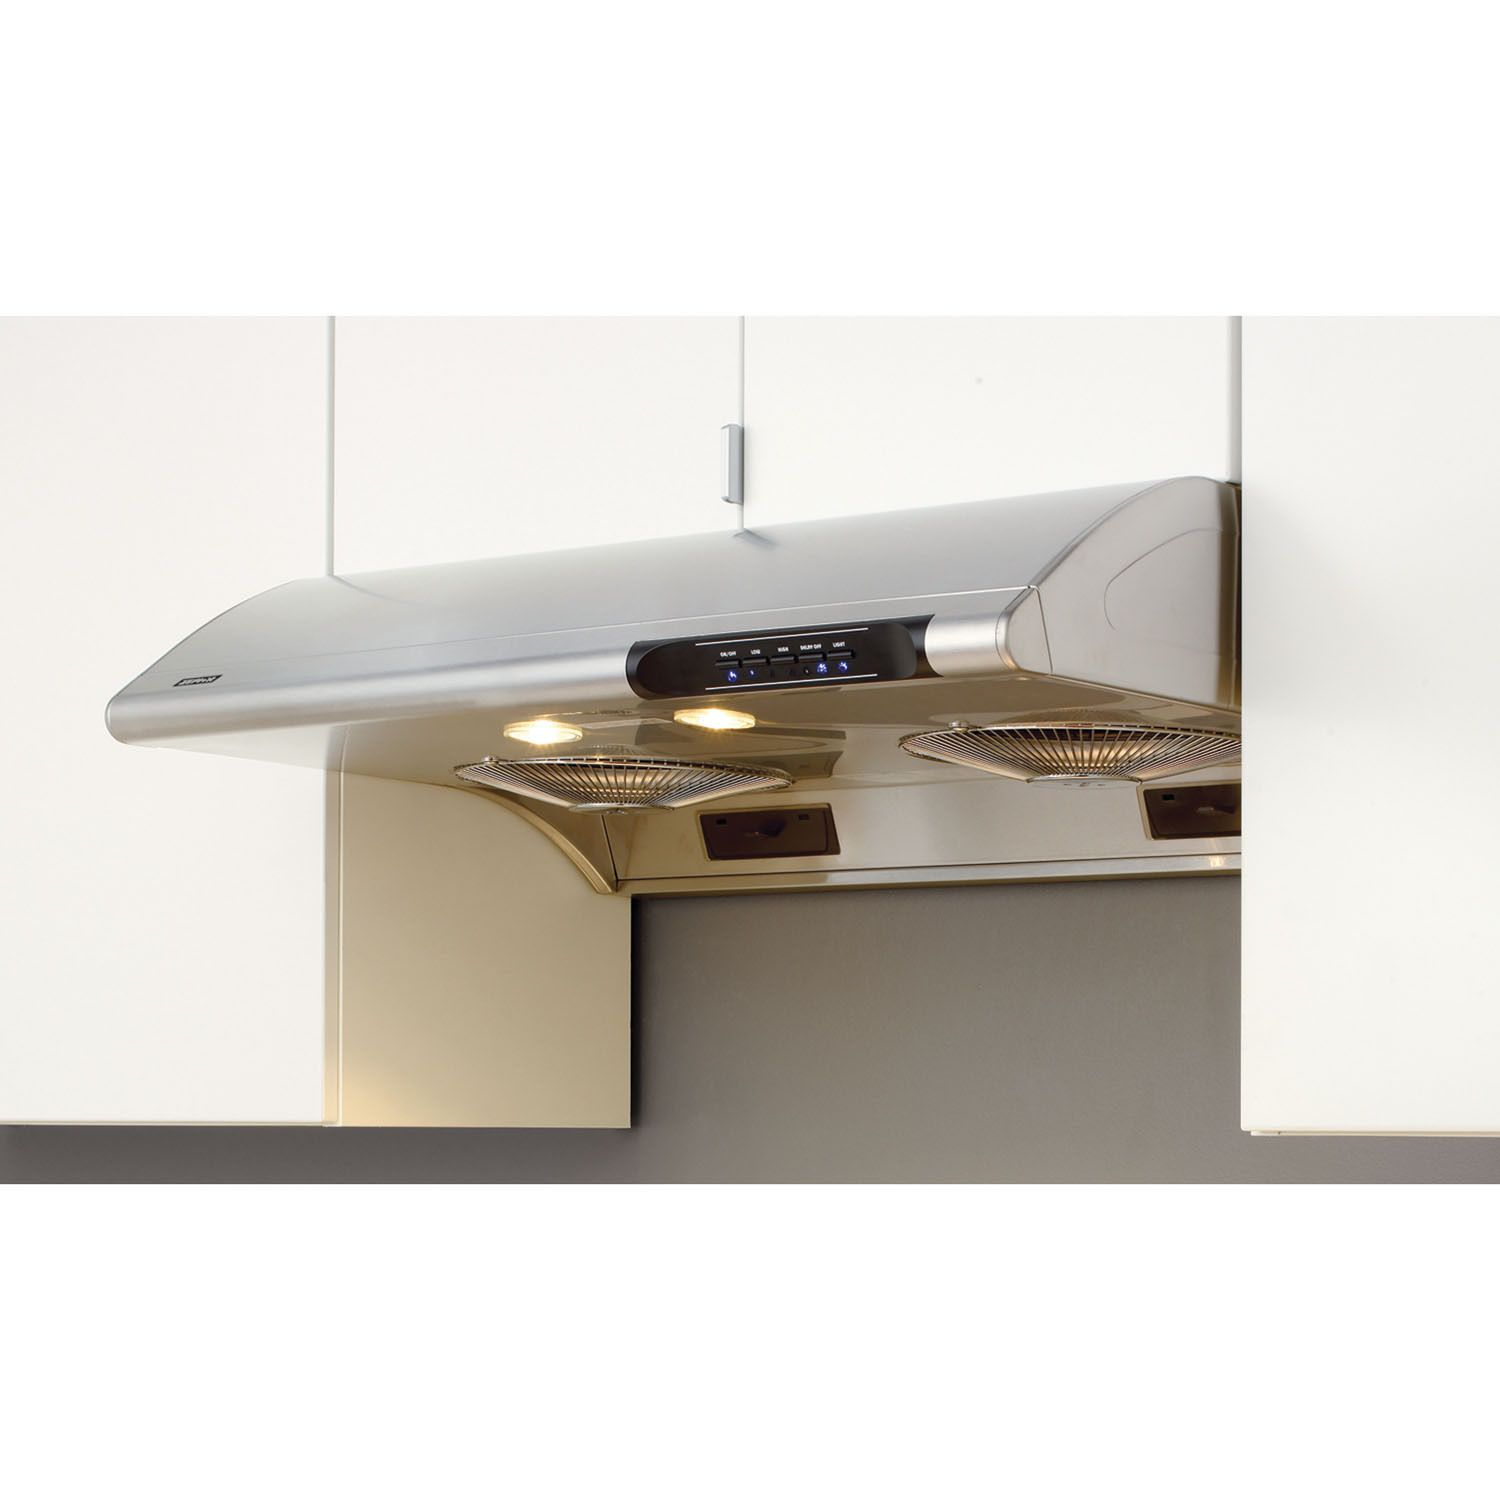 Zephyr Essentials Series Typhoon Stainless Steel Silver 36 Inch Under Cabinet Range Hood